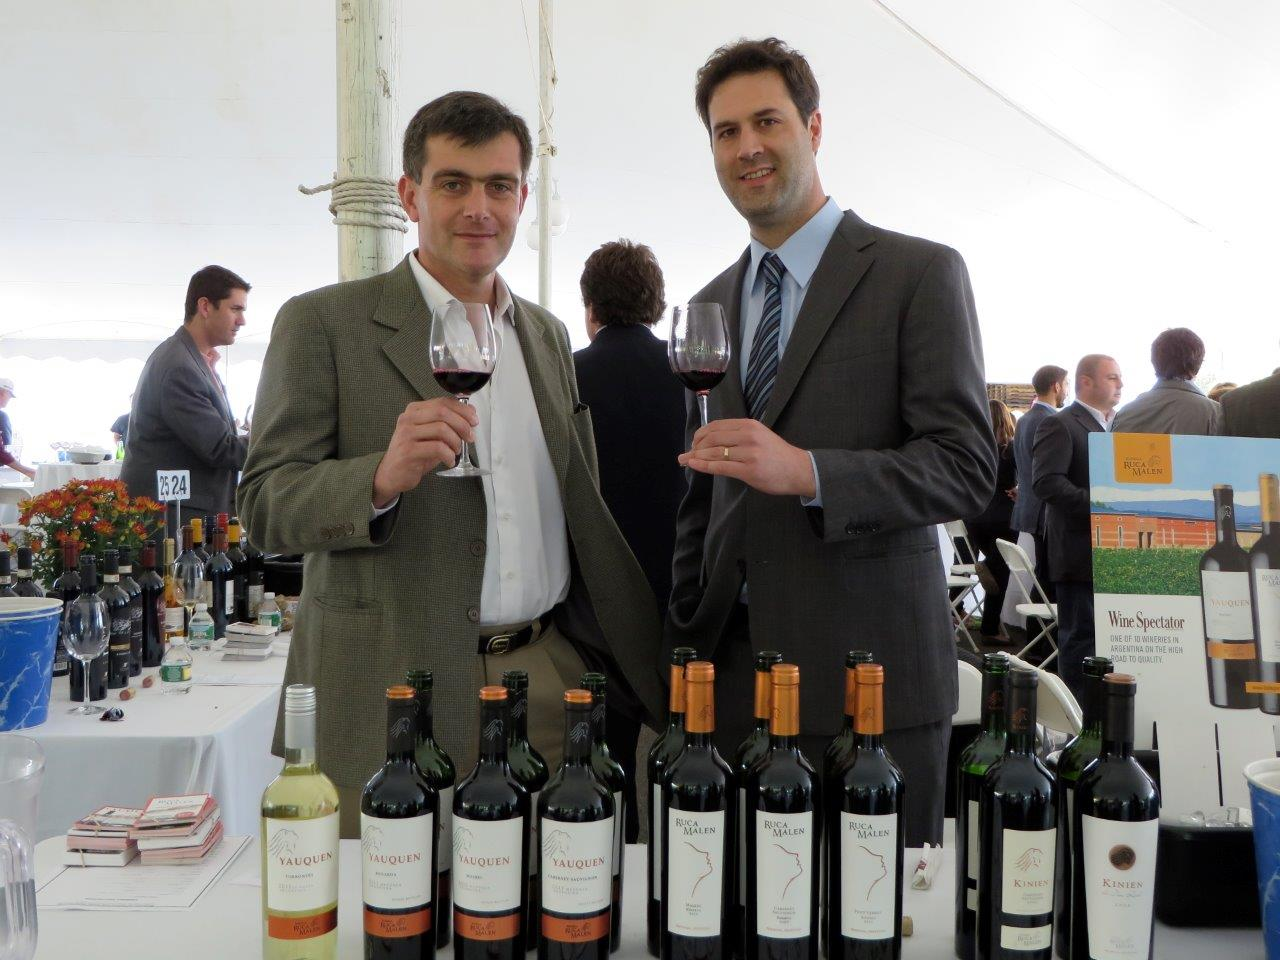 Ruca Malen: A Look at the Argentinian Vineyard's Growth